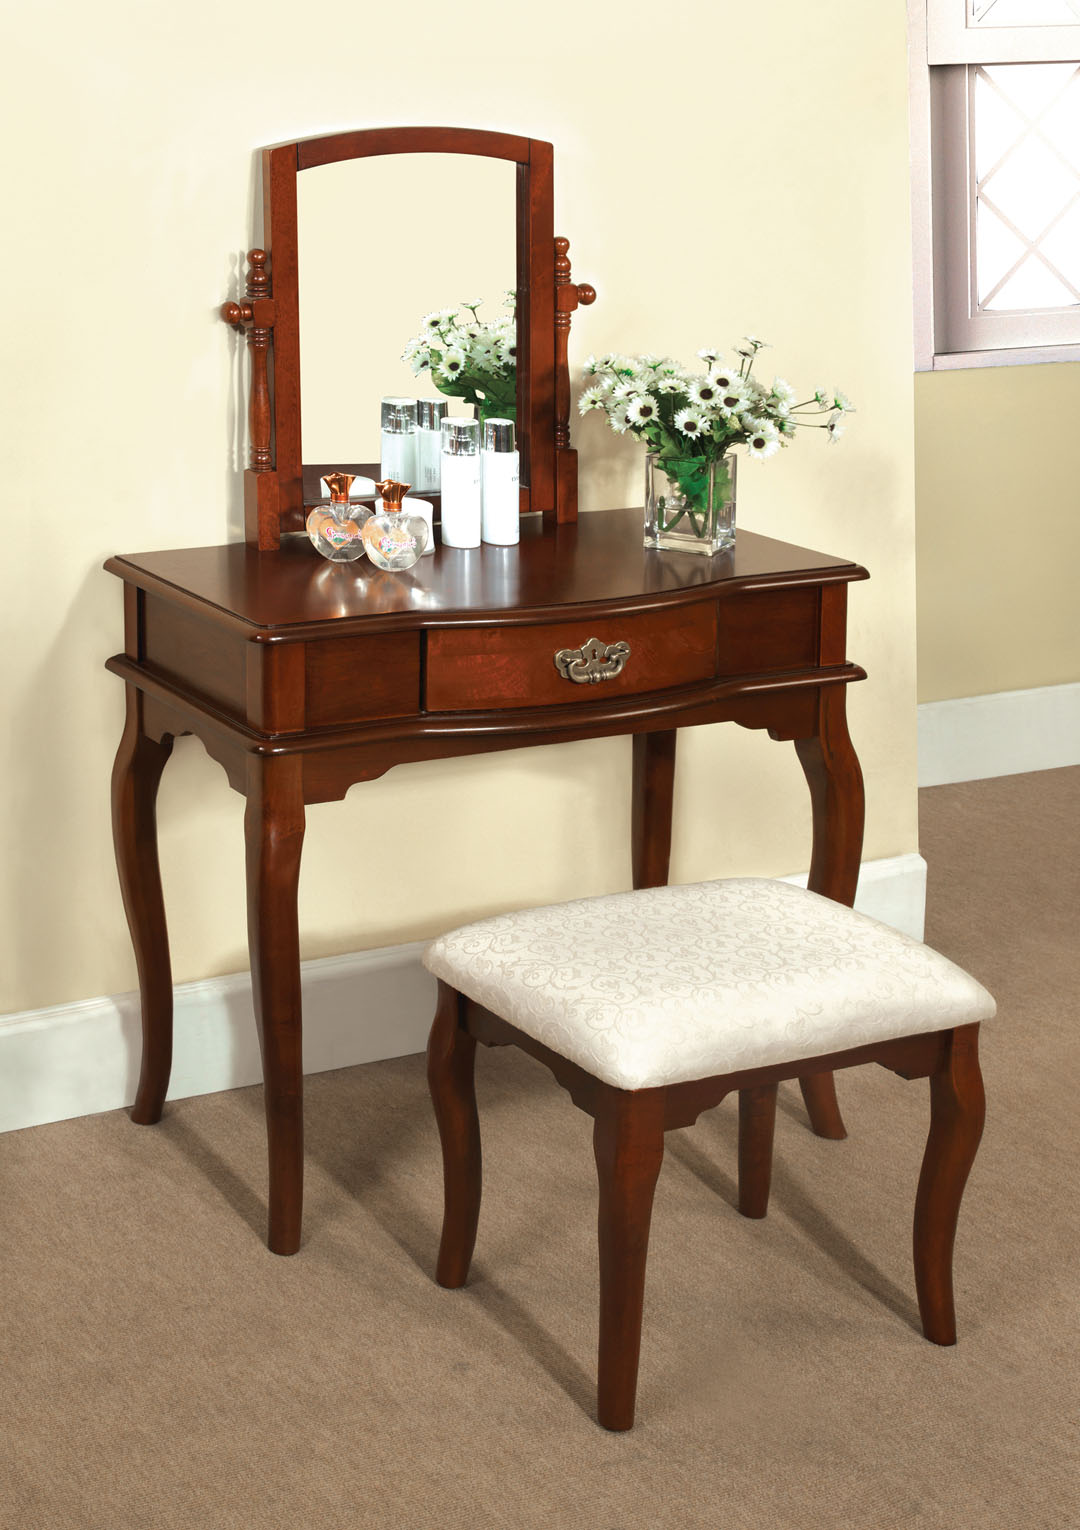 Vanity Table And Stool Set Madera Makeup Bedroom Vanity Set Table W Drawer Stool